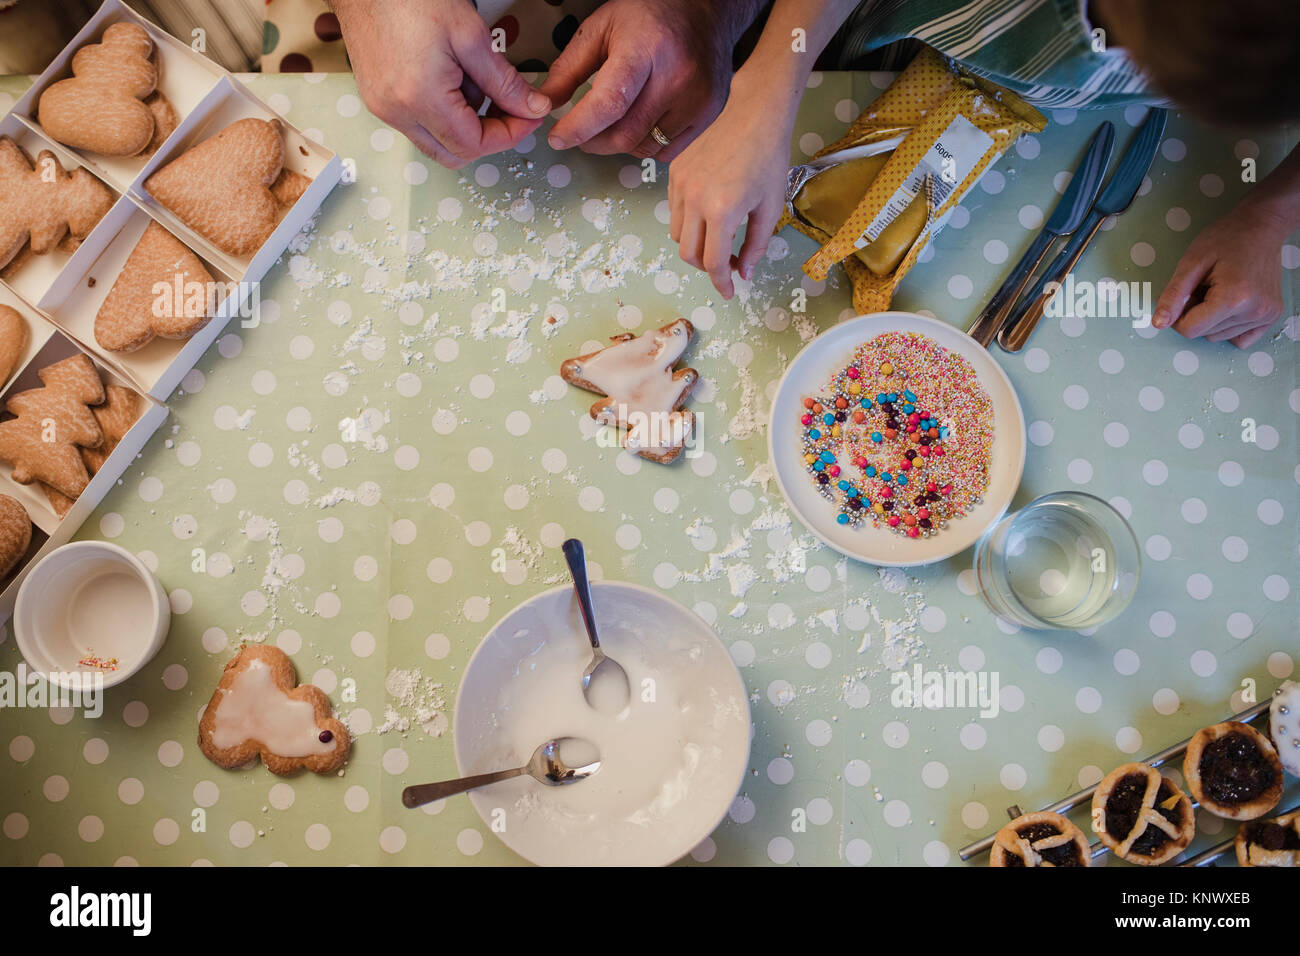 Overhead view of a father and son making christmas treats. - Stock Image